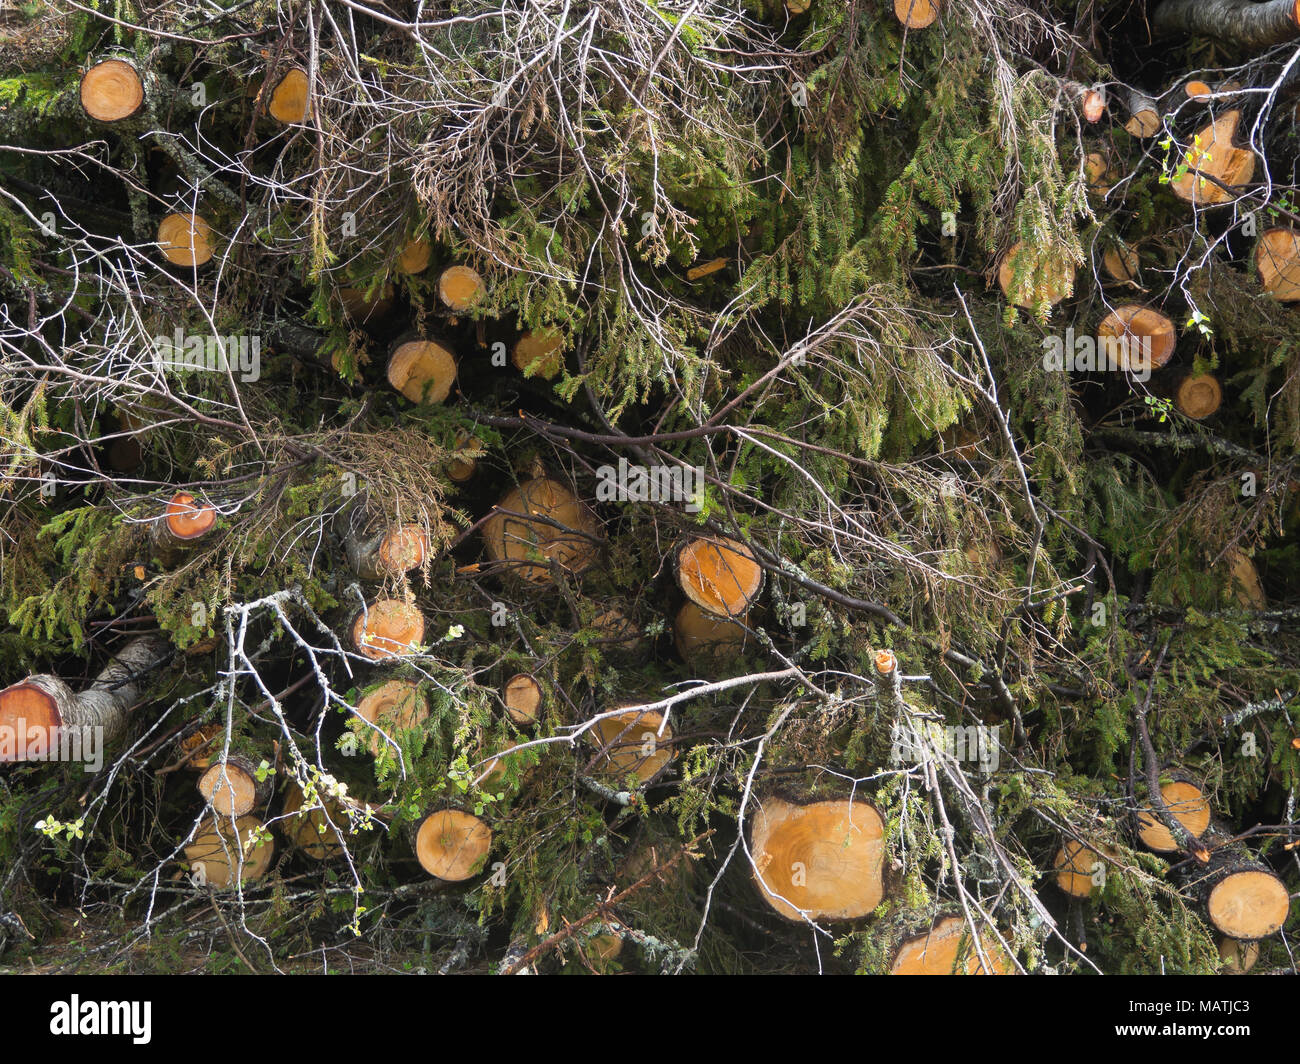 Tree trunks, mainly spruce stacked with their branches and leaves after felling in Ostmarka, Oslo Norway - Stock Image